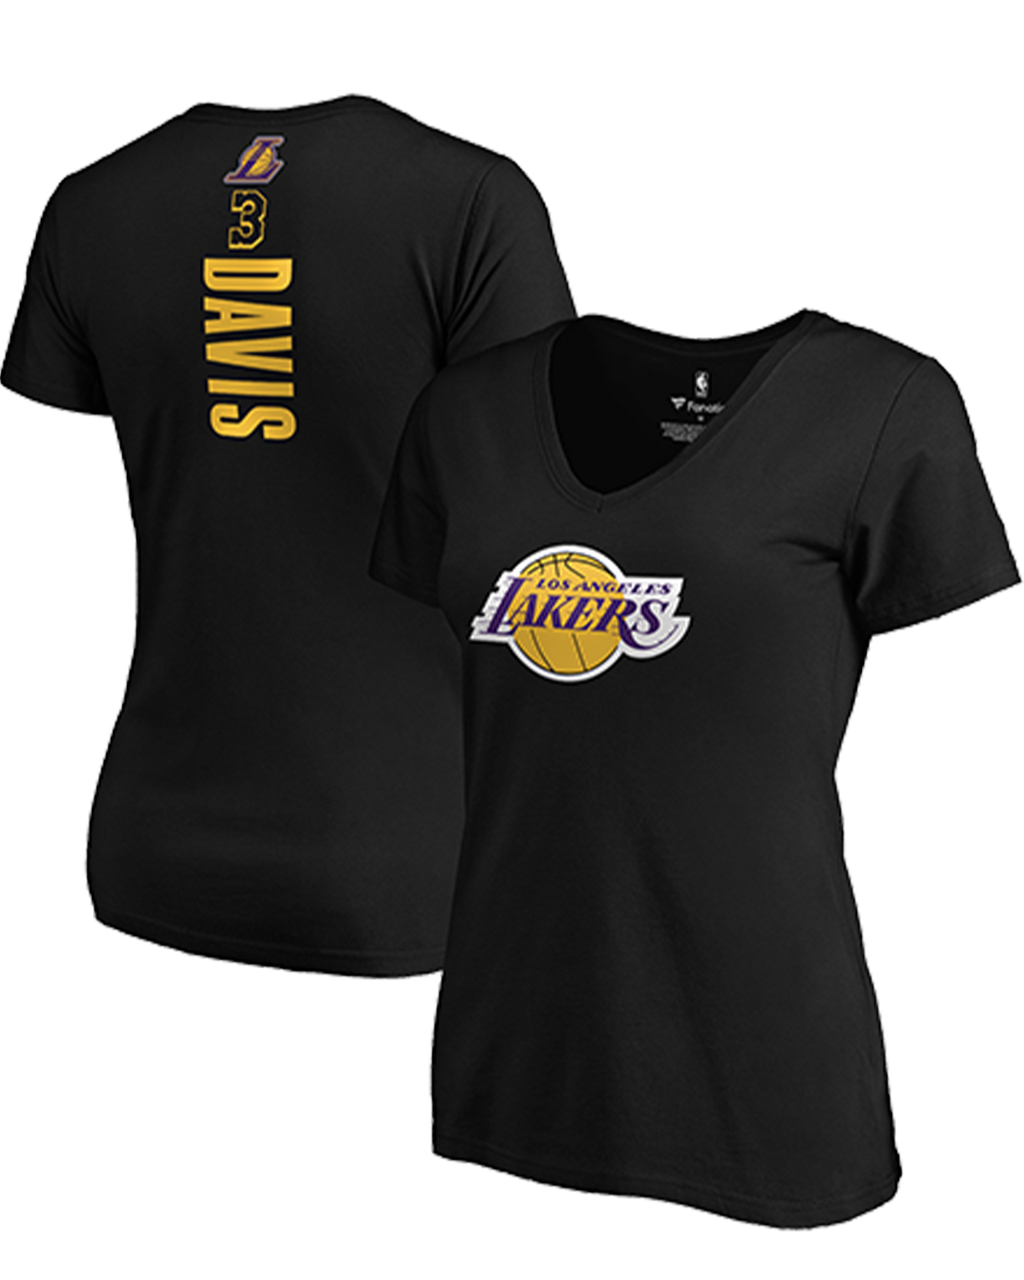 Name & Number Vertical Womens Anthony Davis Los Angeles Lakers Tee